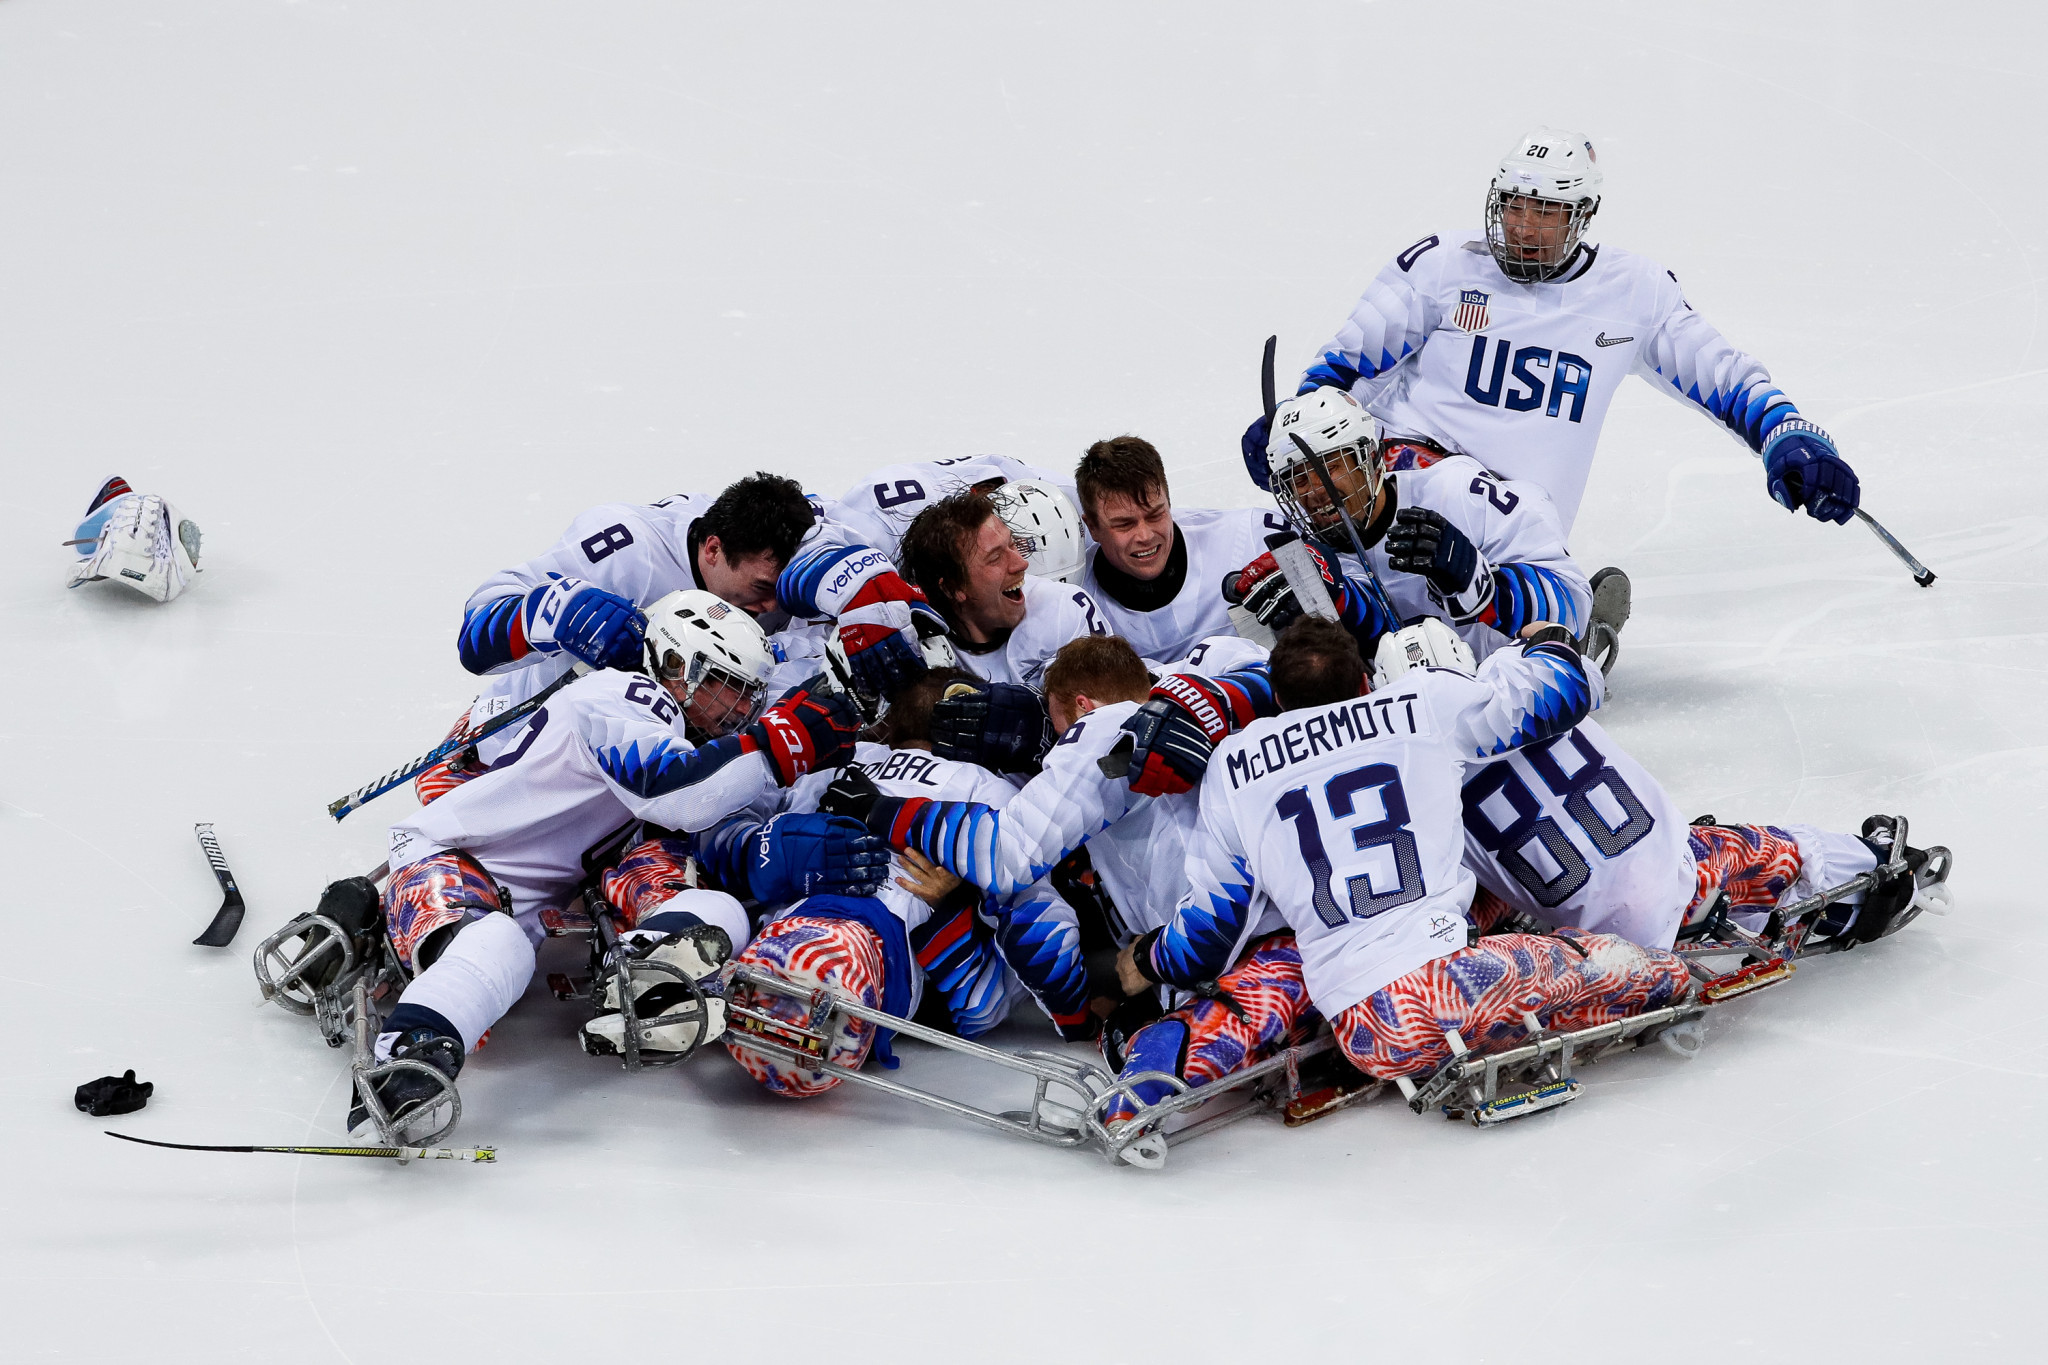 United States mount incredible comeback to beat Canada in Pyeongchang 2018 Para-ice hockey final